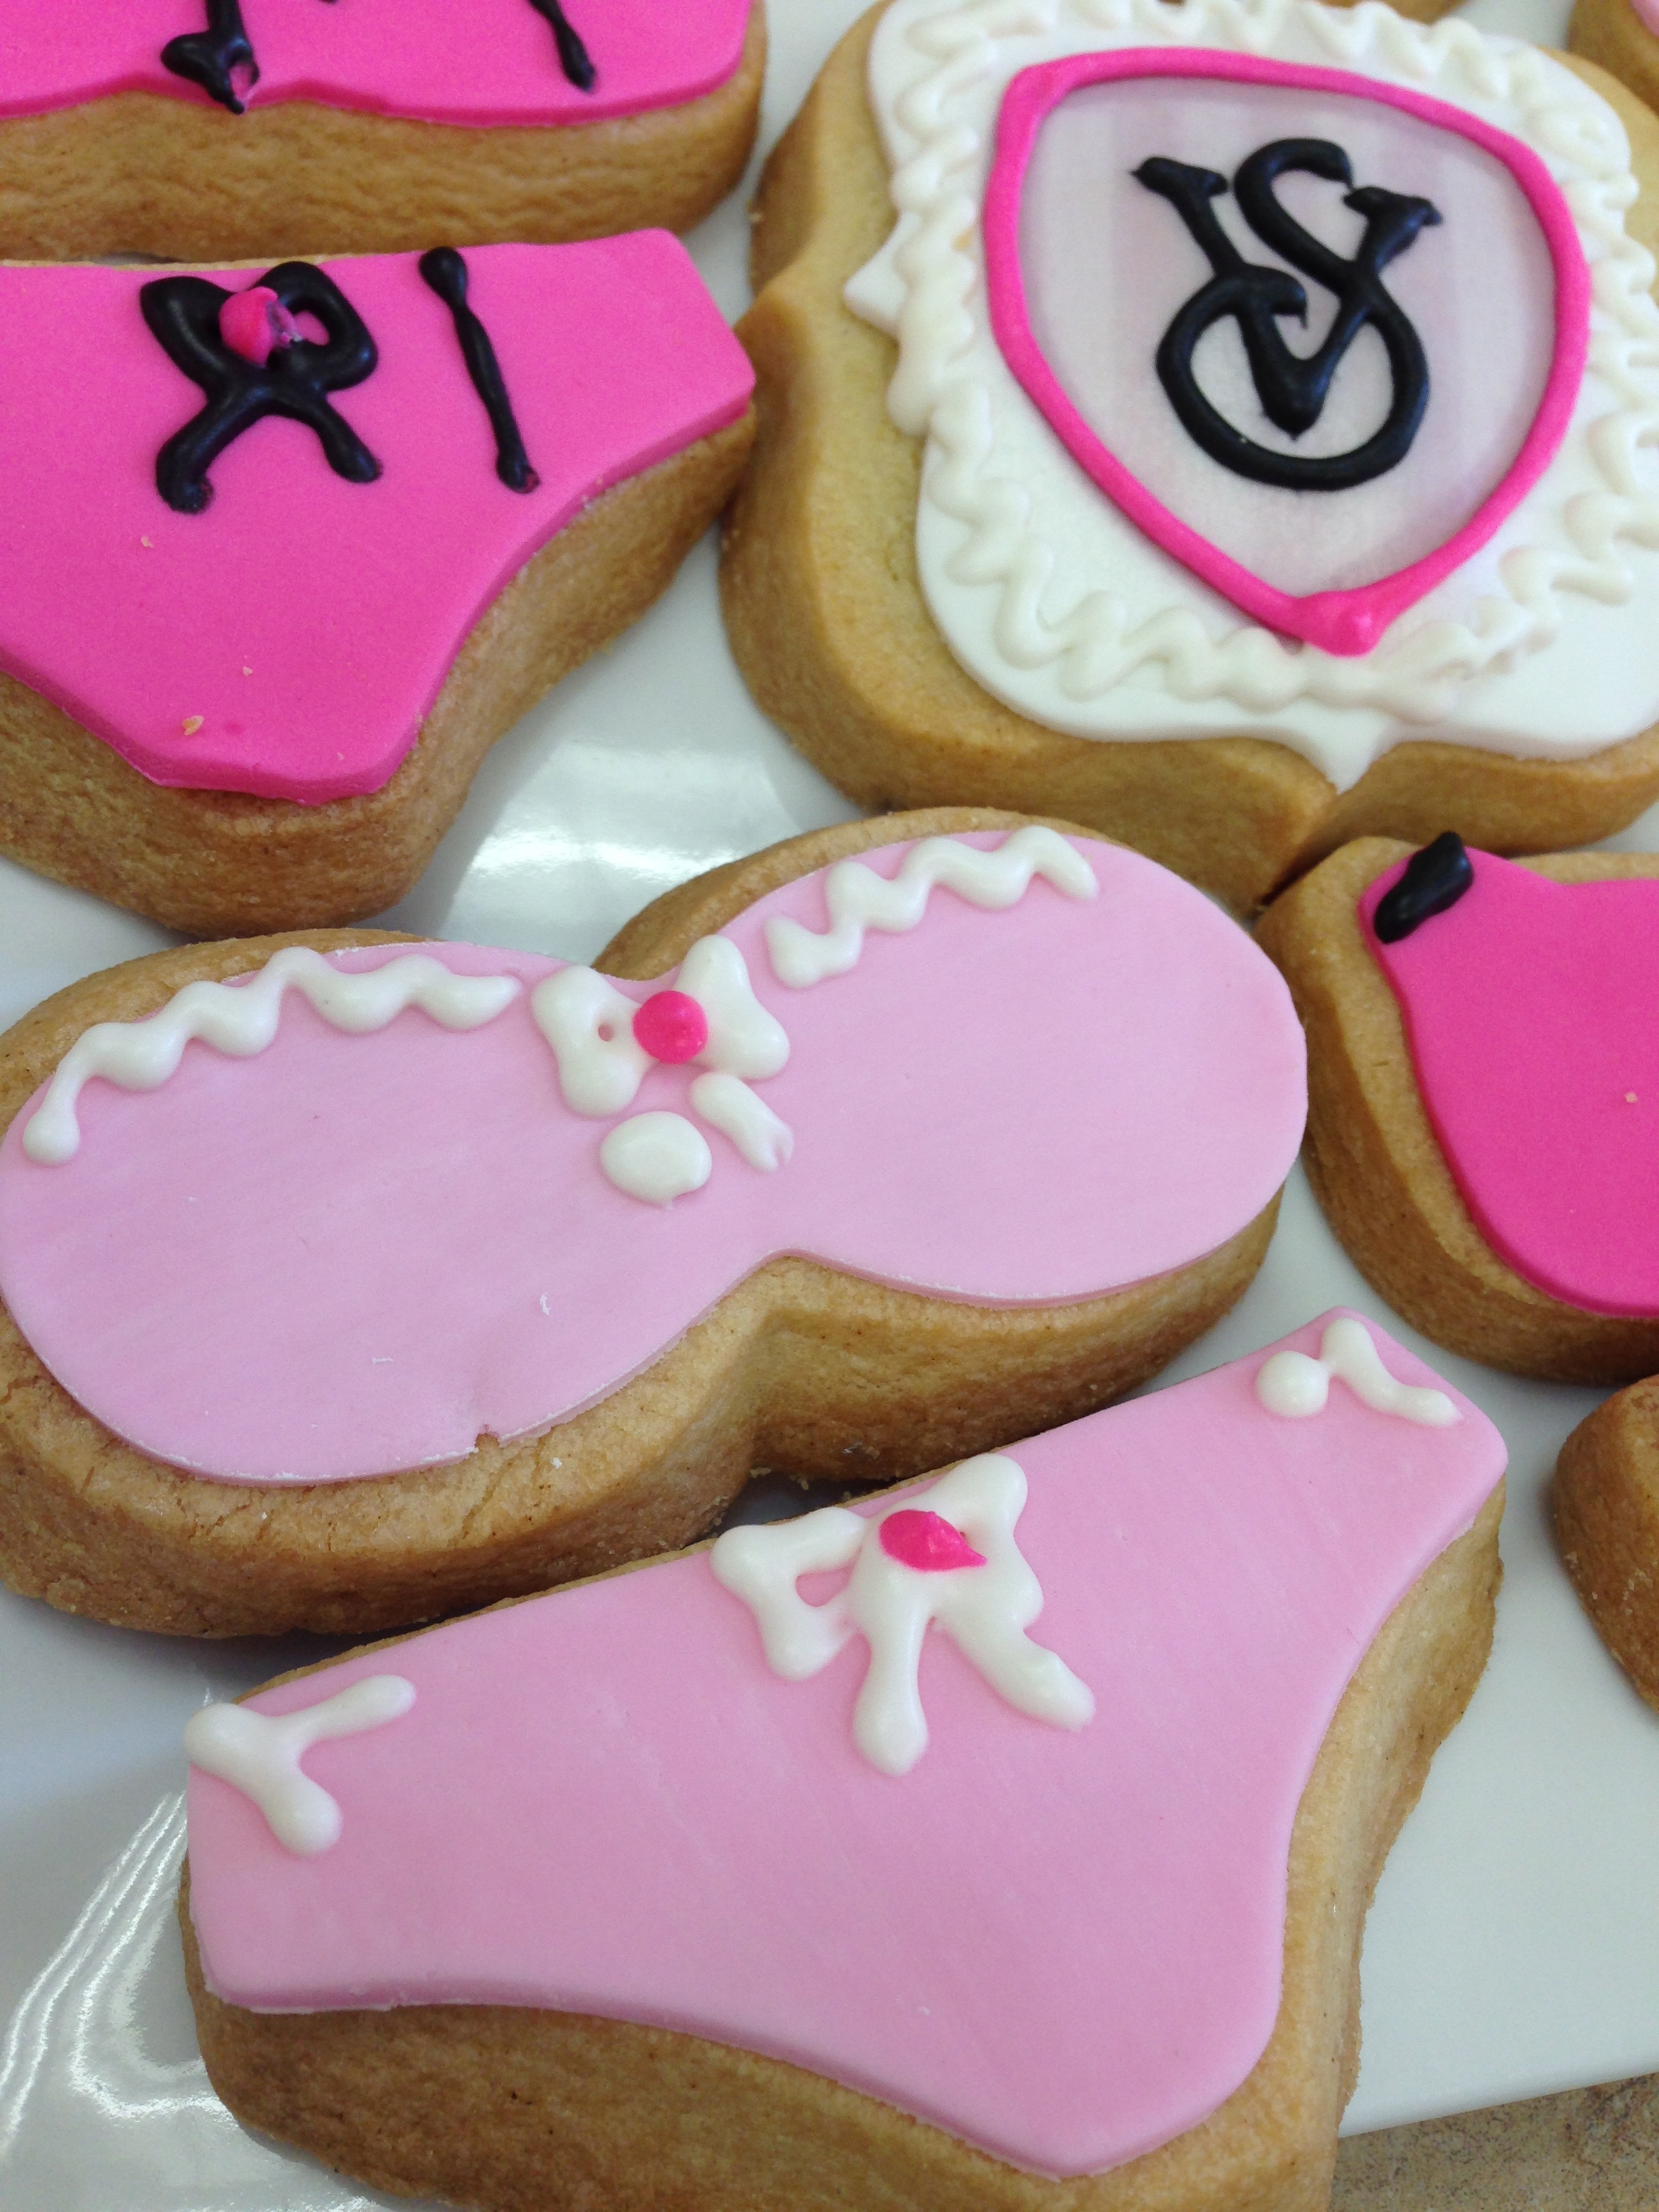 Bra and Panties Cookies